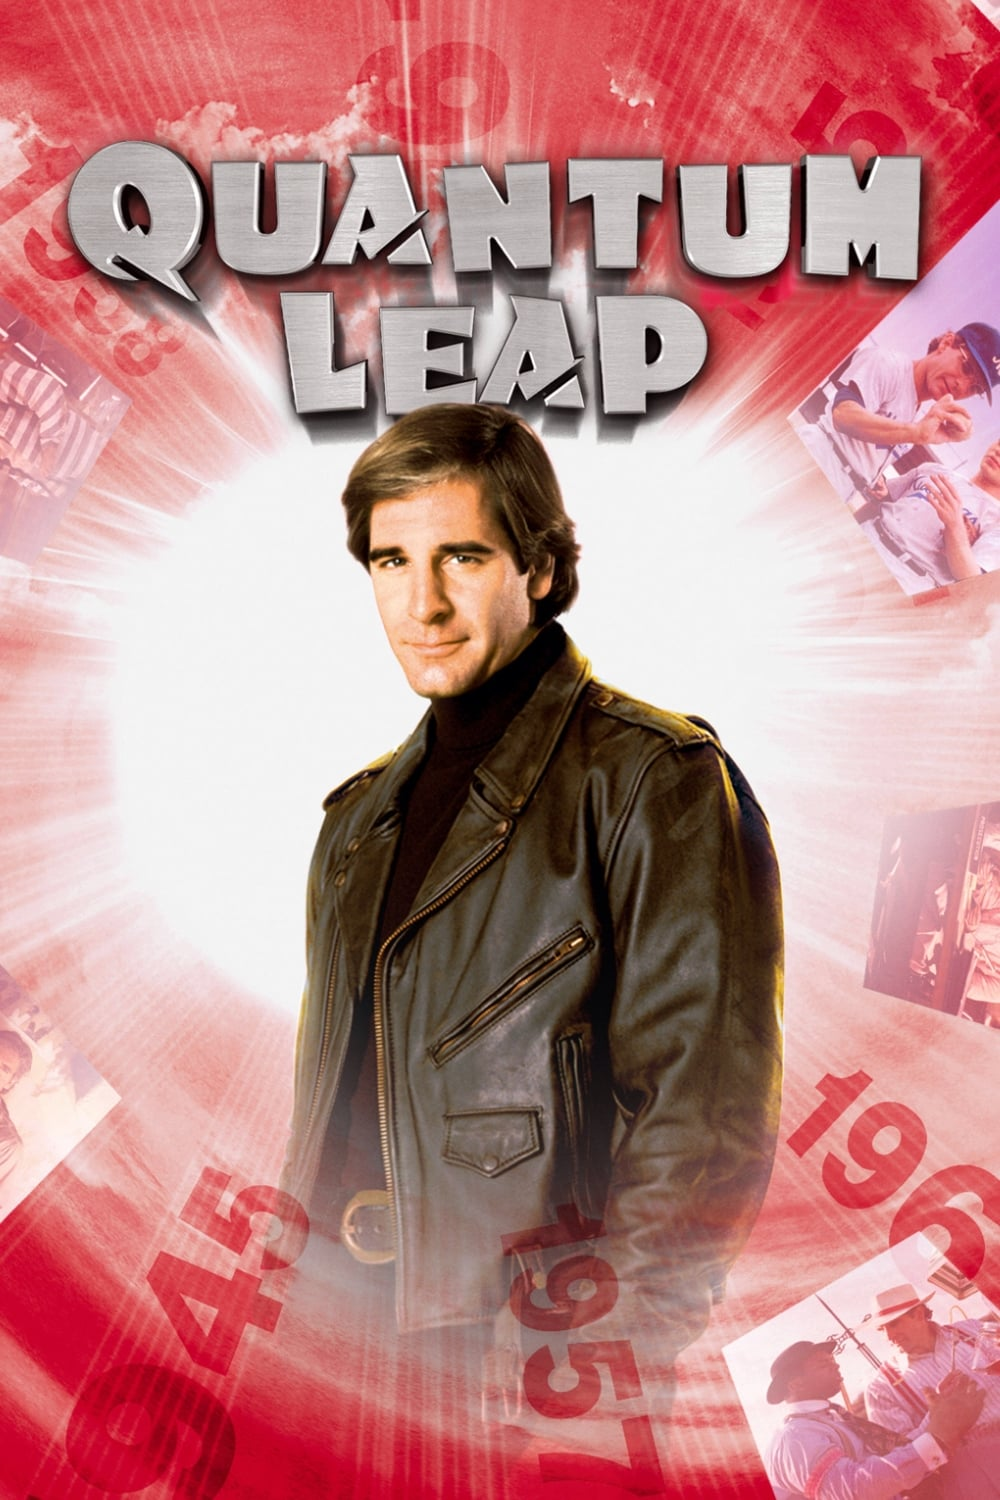 quantum leap tv series 19891993 posters � the movie